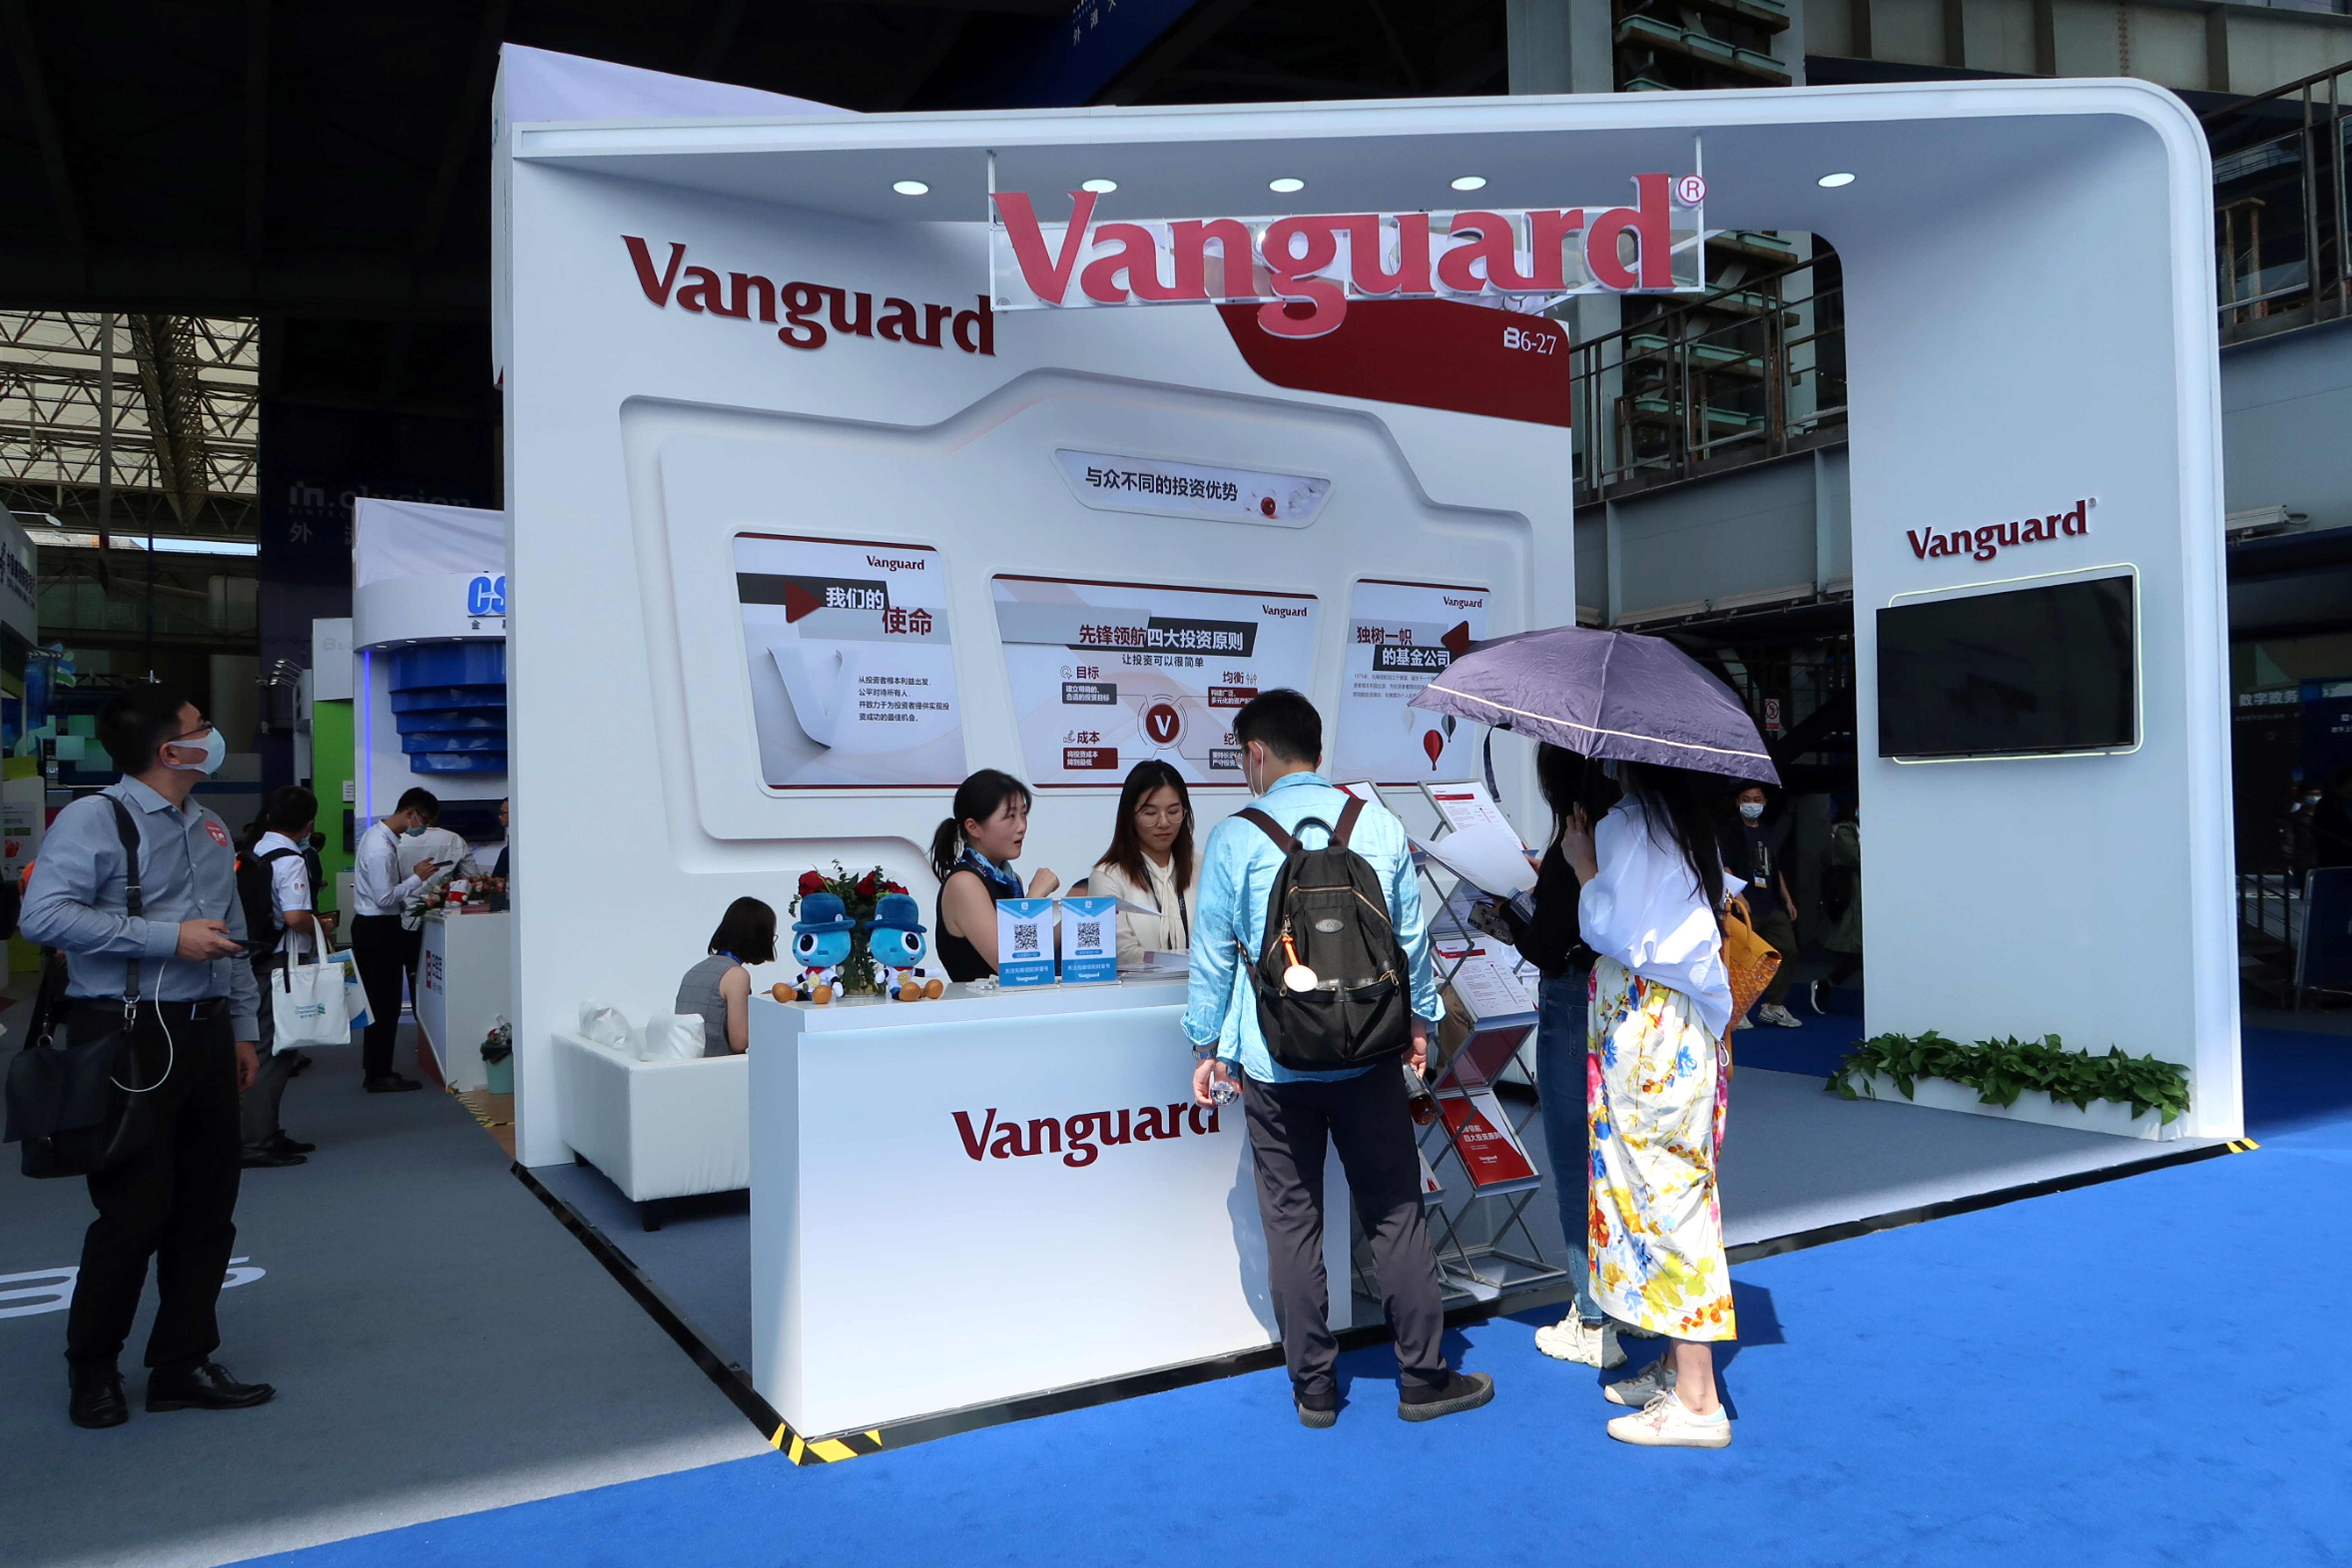 People are seen at a booth of Vanguard Group at a fair during the INCLUSION fintech conference in Shanghai, China September 24, 2020. REUTERS/Cheng Leng